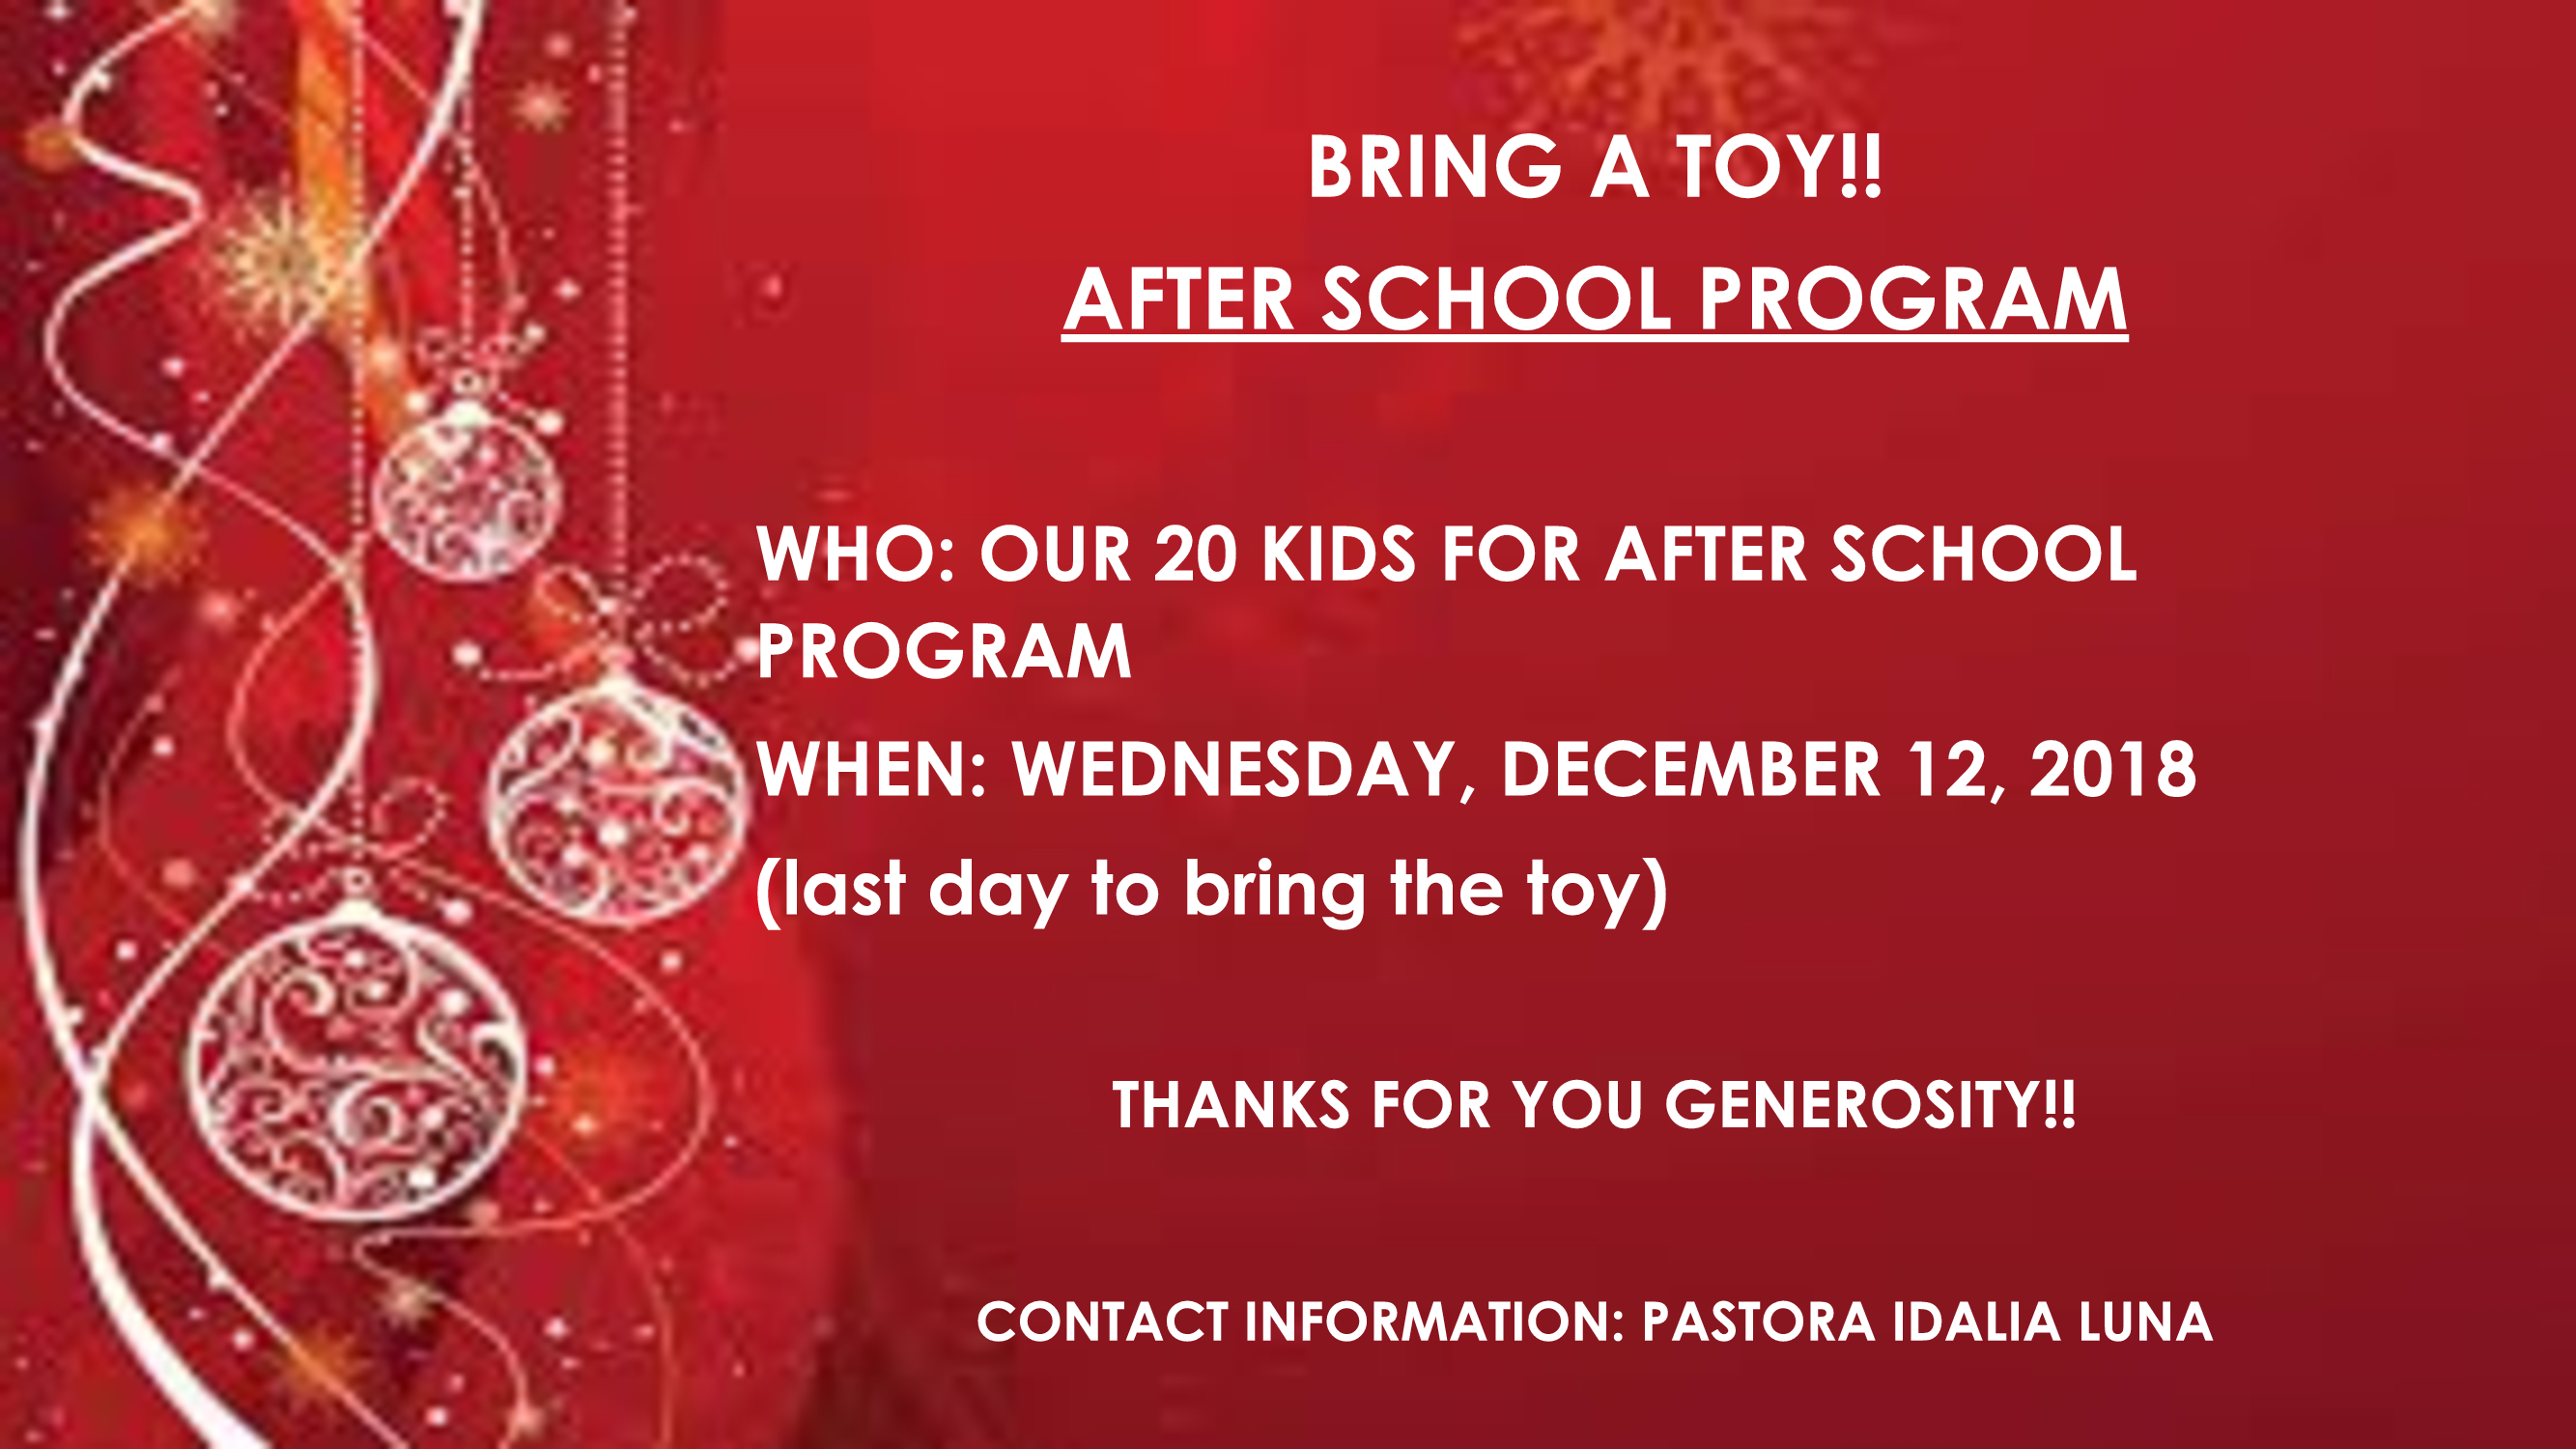 Bring A Toy! Wednesday, December 12th 2018